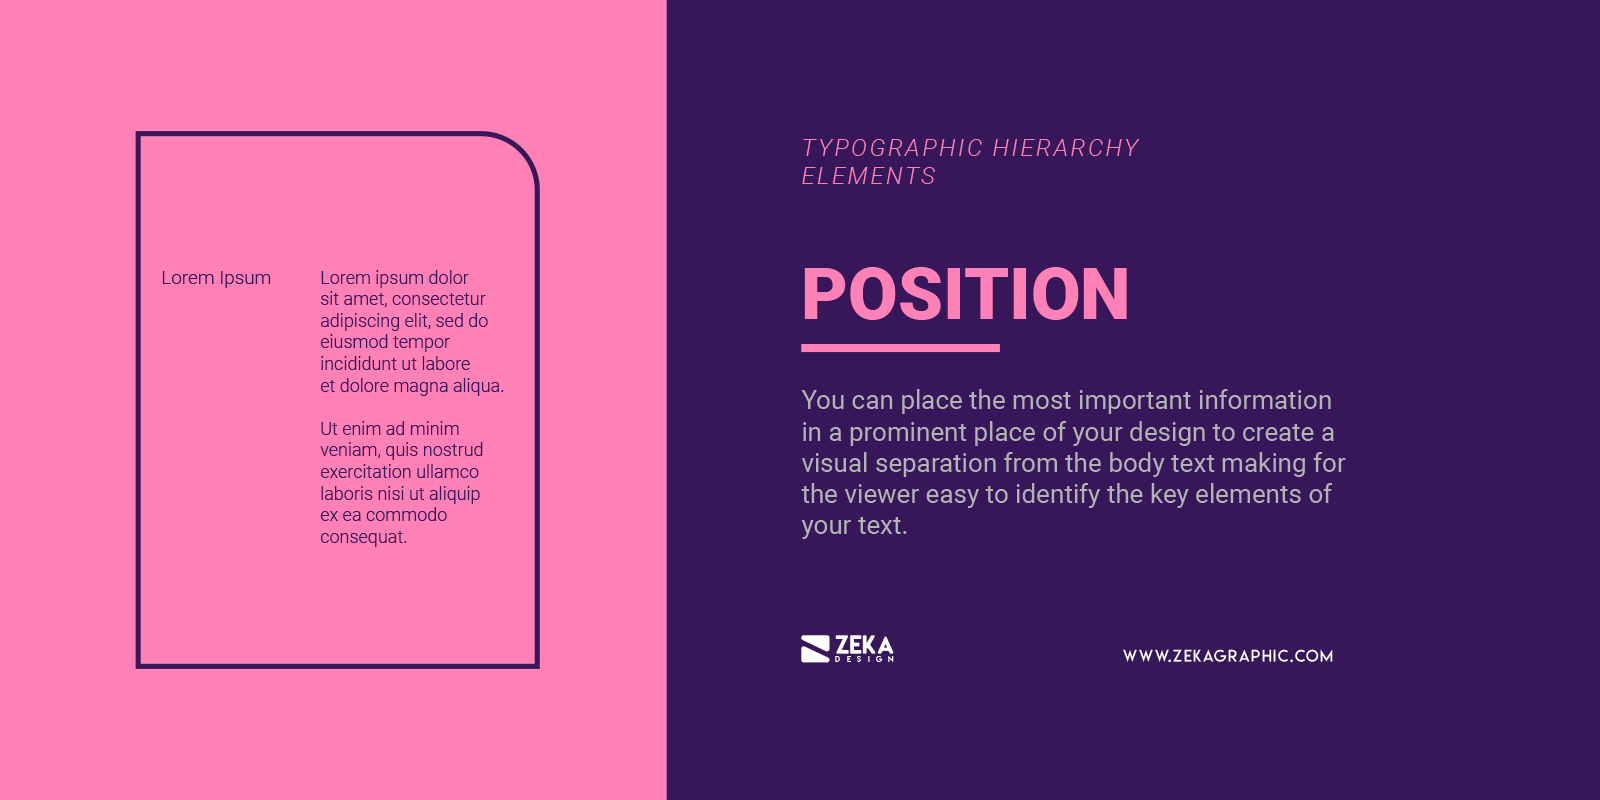 Text Position for Typographic Hierarchy in Graphic Design